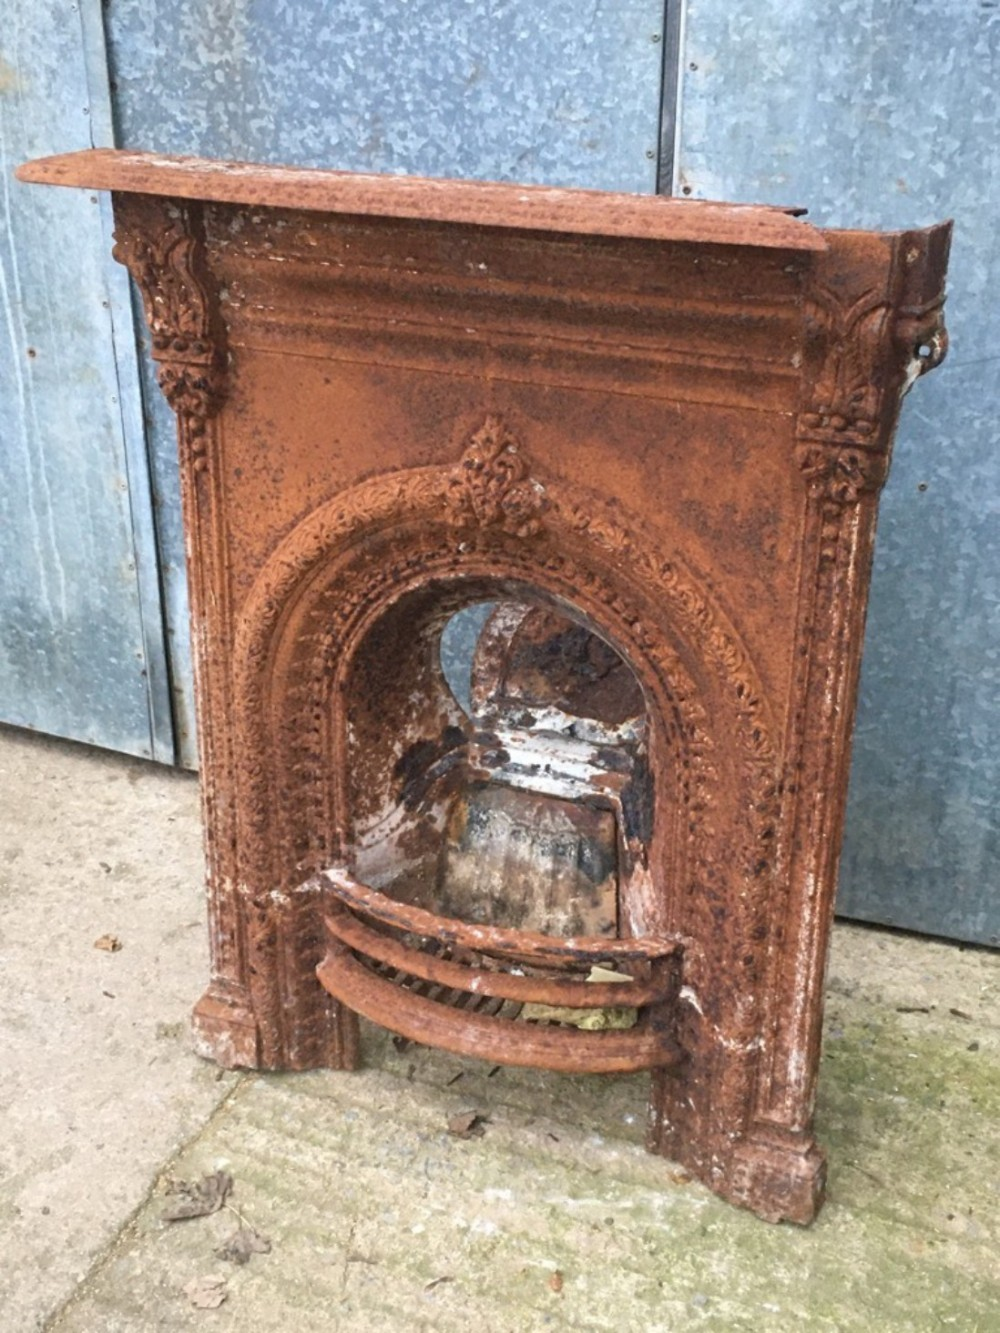 Fireplace Grate with Blower Lovely 2'7 X 3'5 Reclaimed Victorian Cast Iron Fireplace Grate Damaged Repair